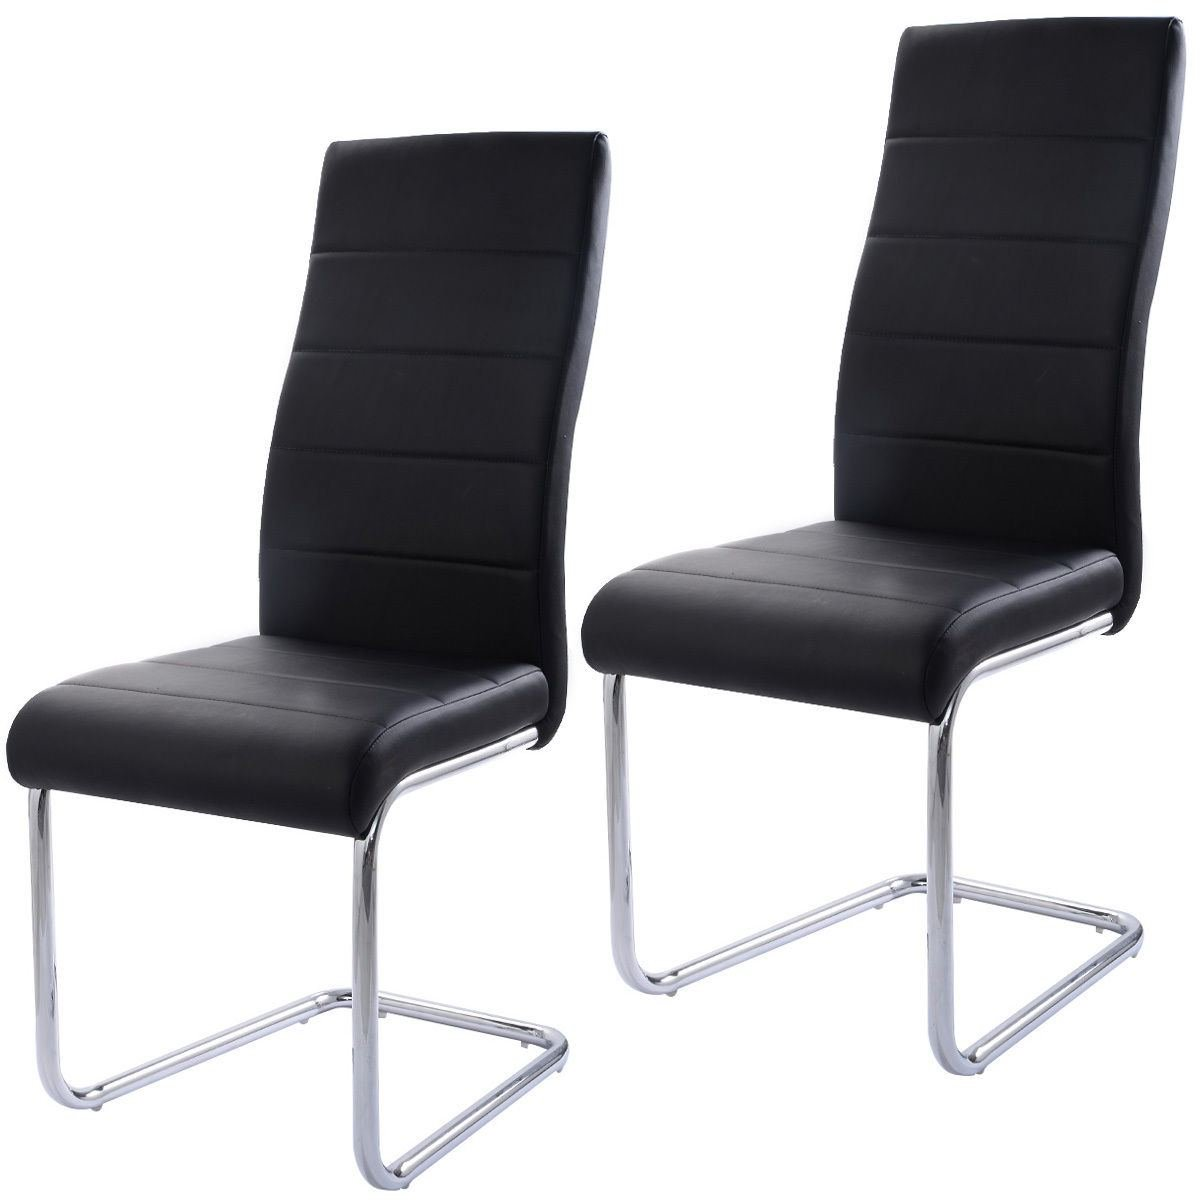 MasterPanel - Set of 2 PU Leather Dining Chairs Elegant Design High Back Home Furniture Black #TP3266 by MasterPanel